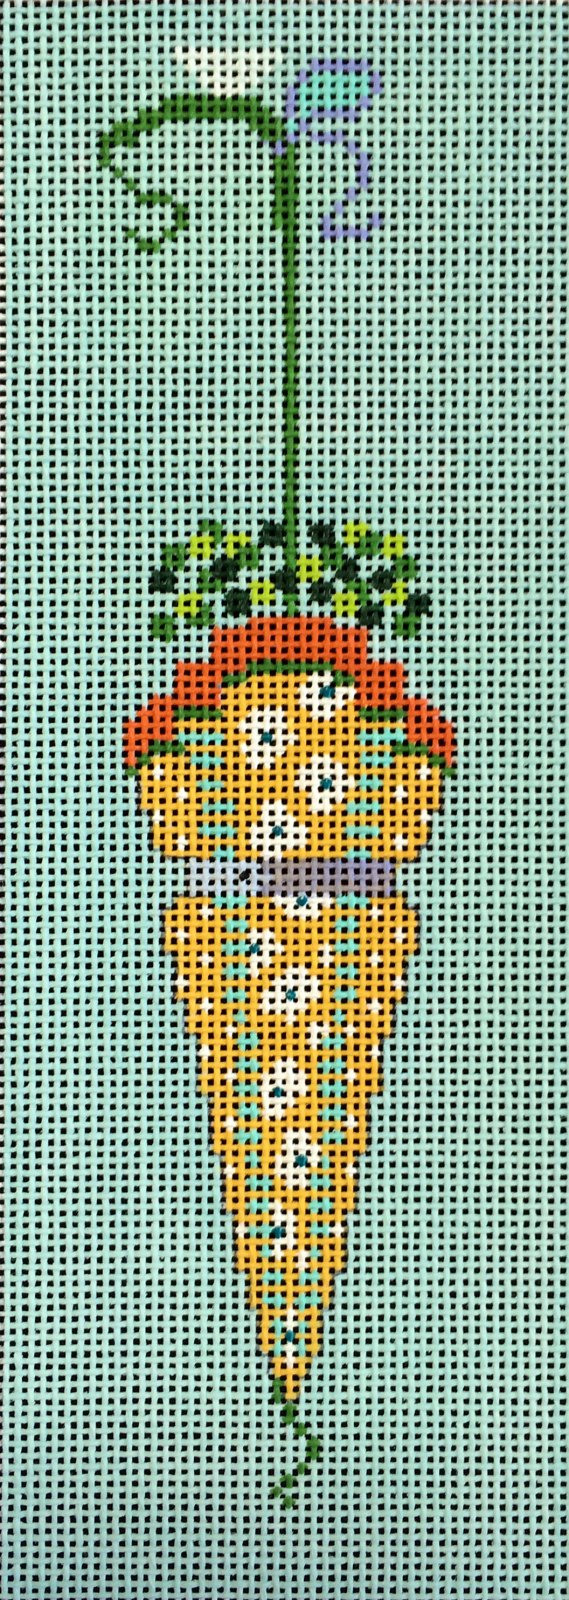 VH3679 - Carrot Umbrella